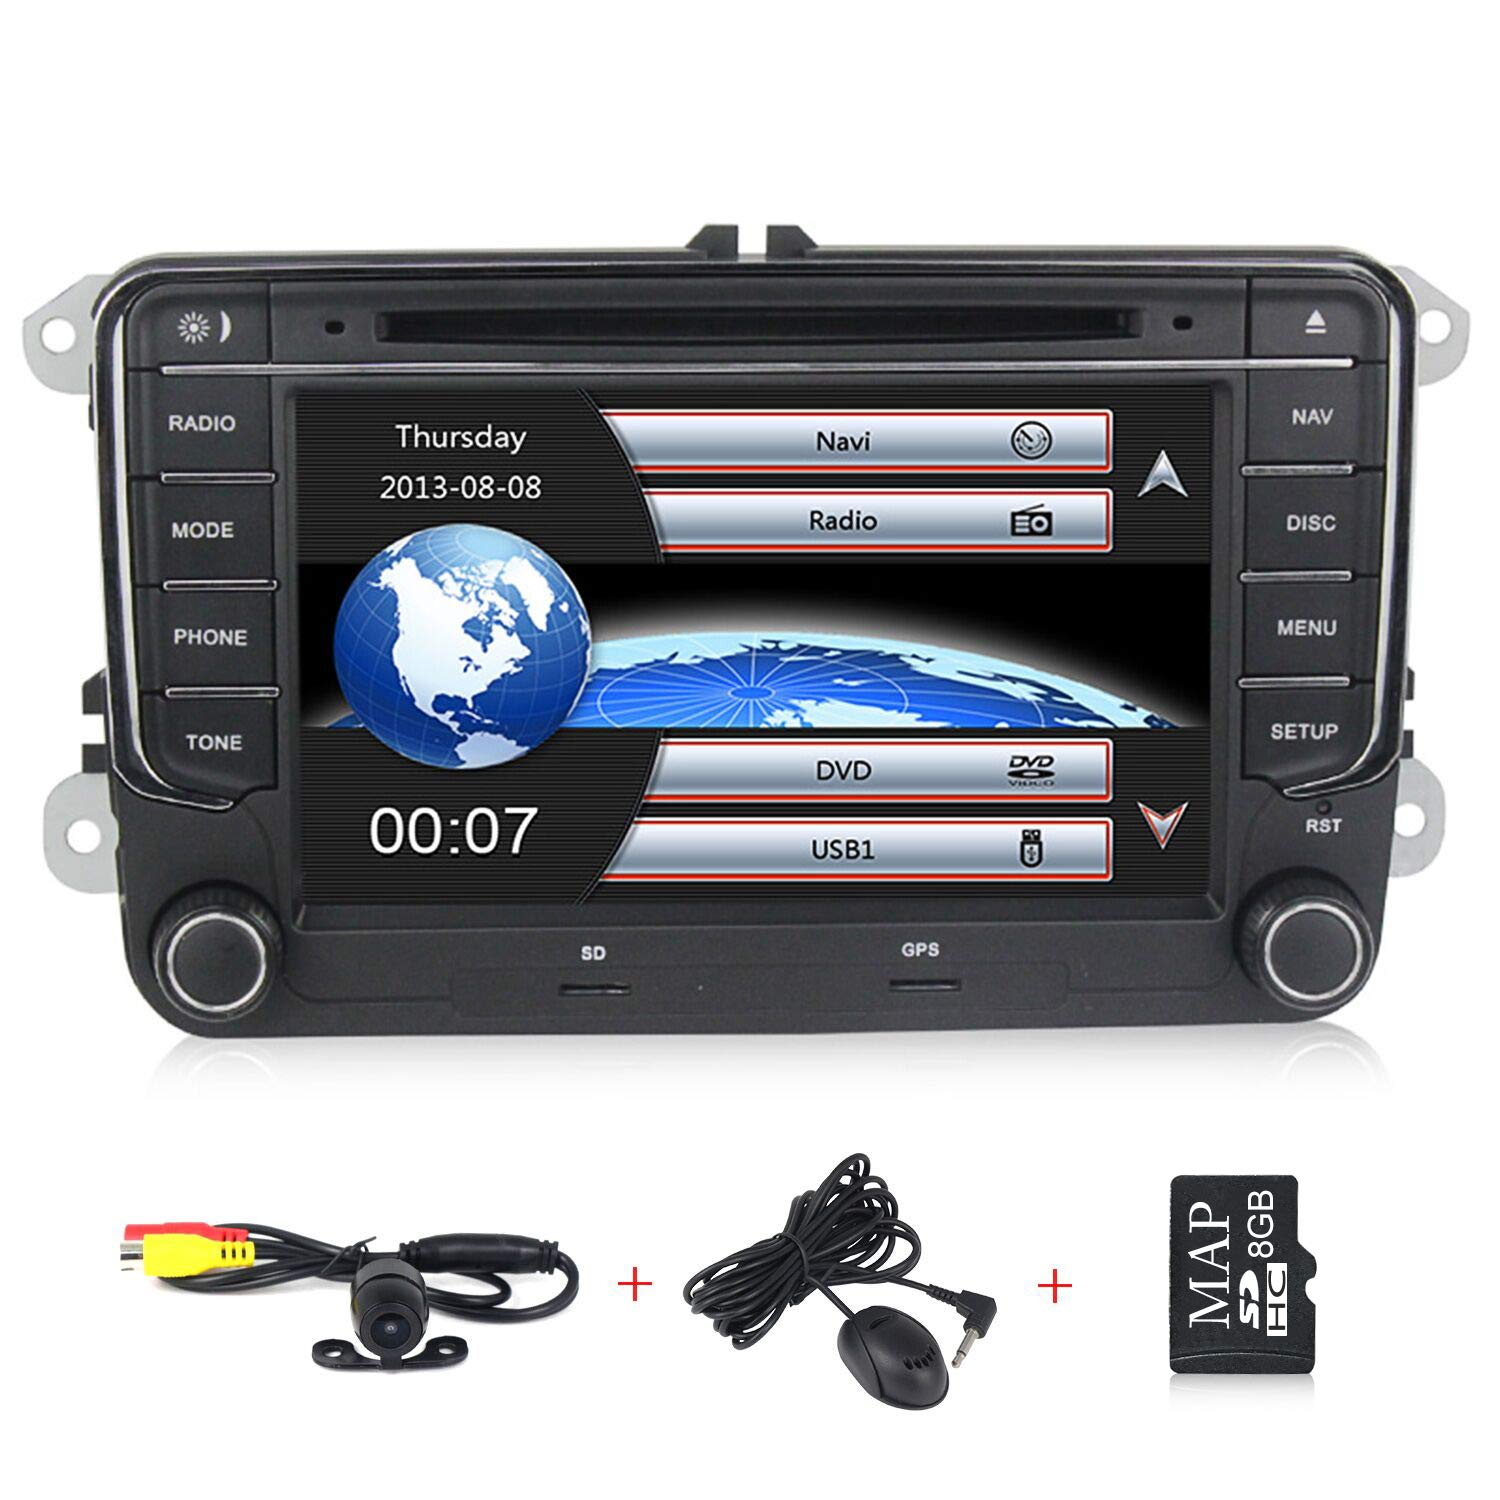 HD 7 inch Car Stereo GPS DVD Navi 2 Din for VW Jetta Passat Golf Beetle Caddy Tiguan Scirocco Octavia Altea Touran Amarok Car Radio in-Dash DVD